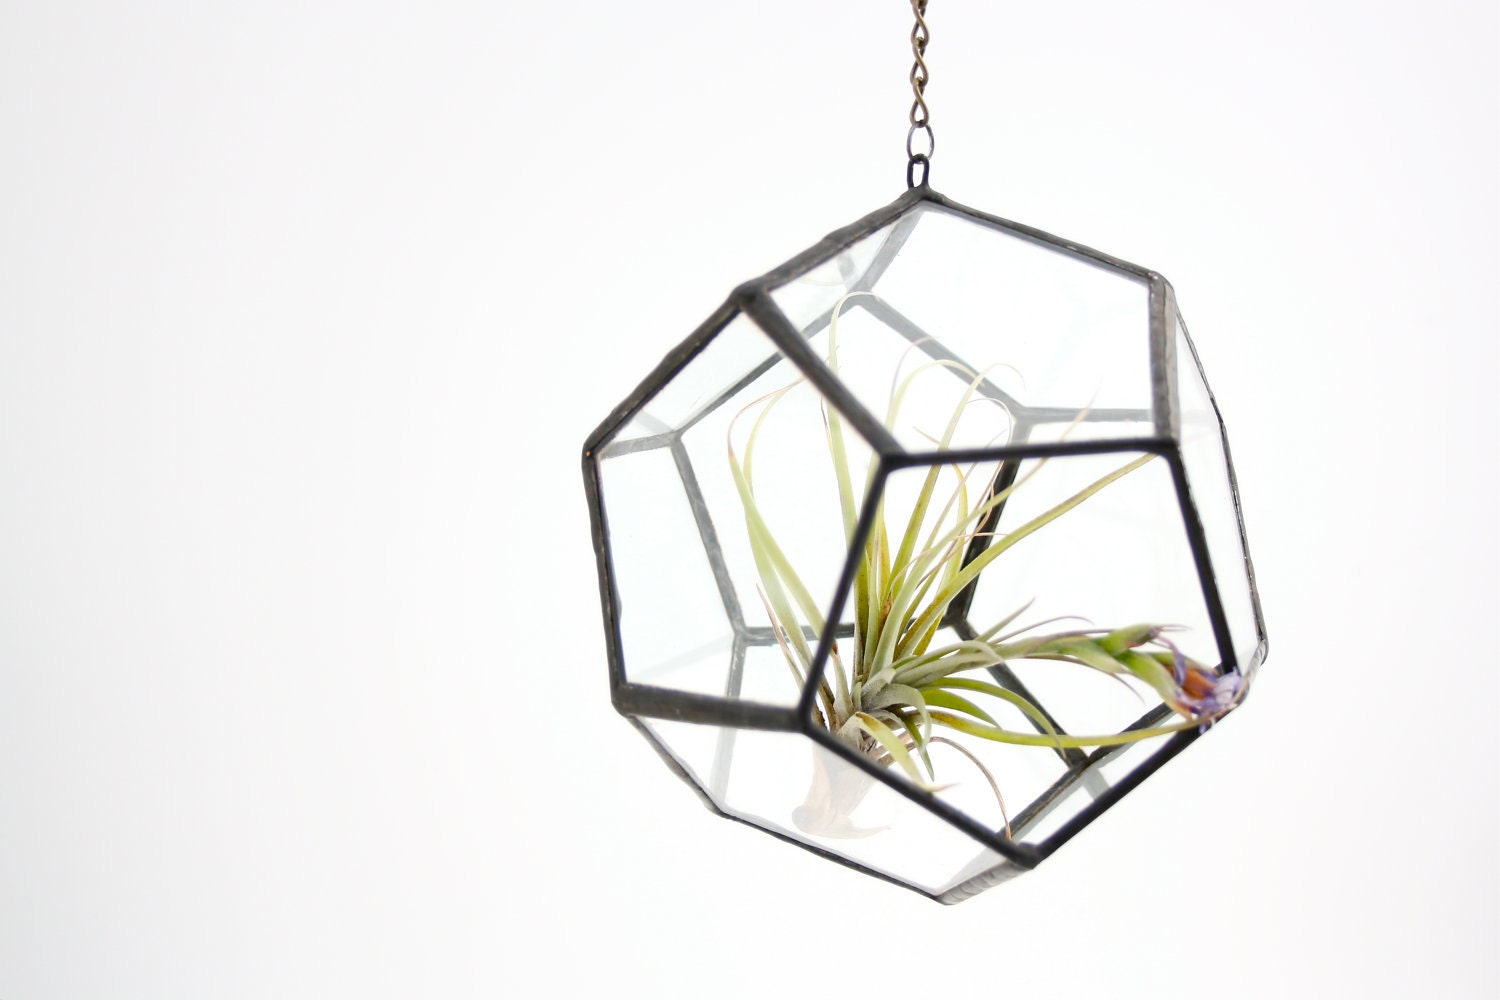 Small dodecahedron hanging geometric terrarium by megamyers